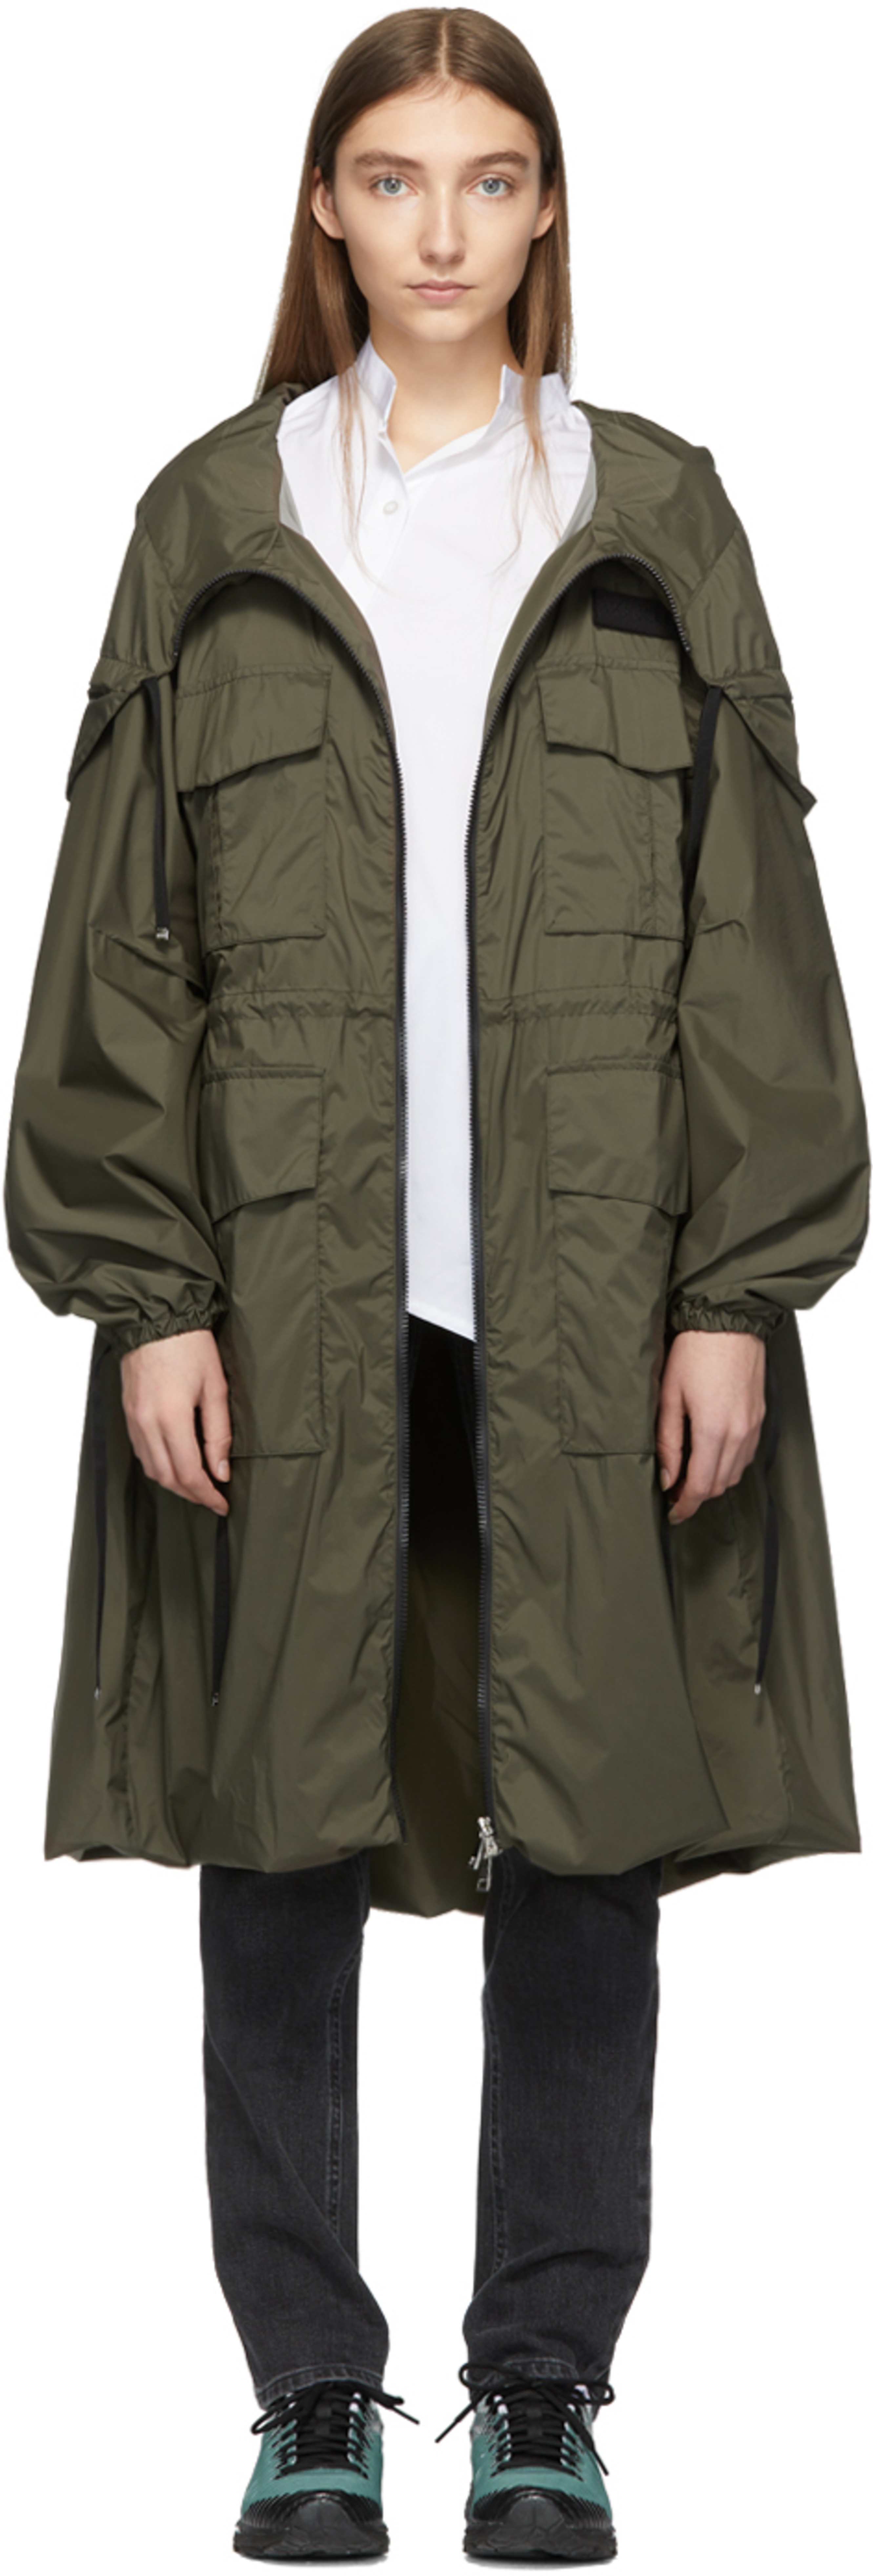 f40d17b2ac8d87 Moncler for Women SS19 Collection